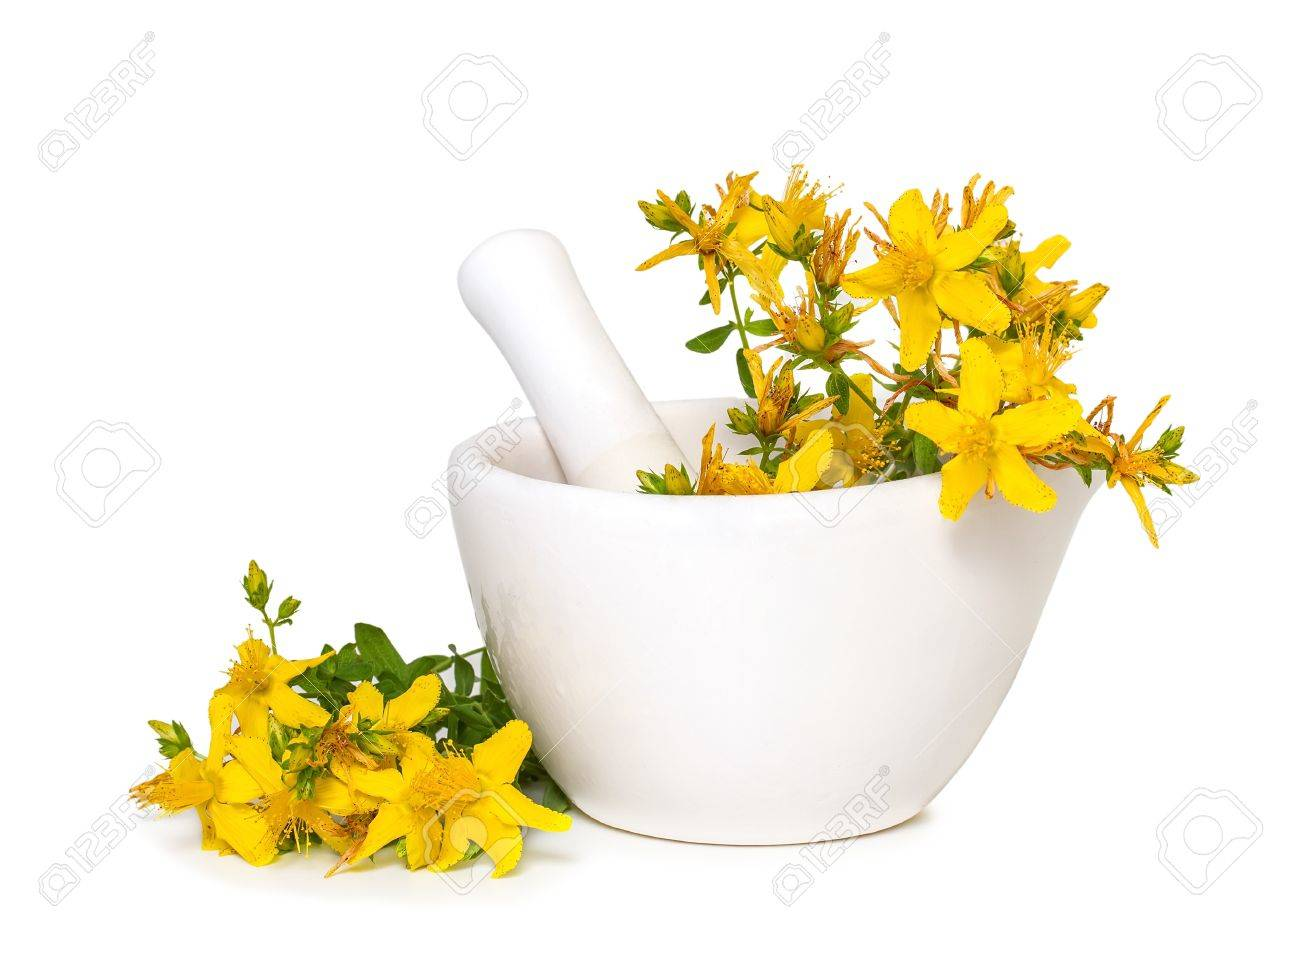 St. John's wort flowers in medical mortar on a white background - 20951757